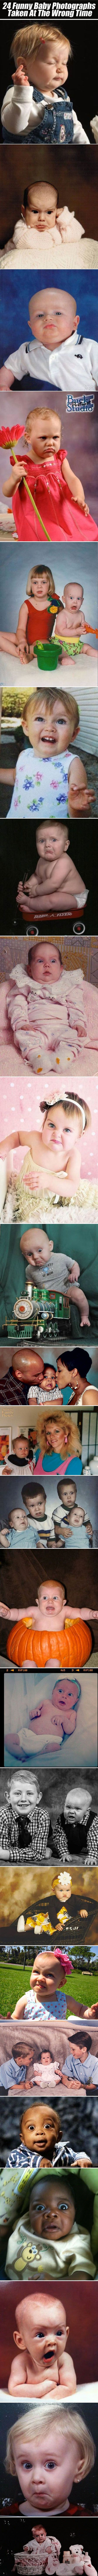 24 Funny Baby Photographs Taken At The Wrong Time Pictures, Photos, and Images for Facebook, Tumblr, Pinterest, and Twitter